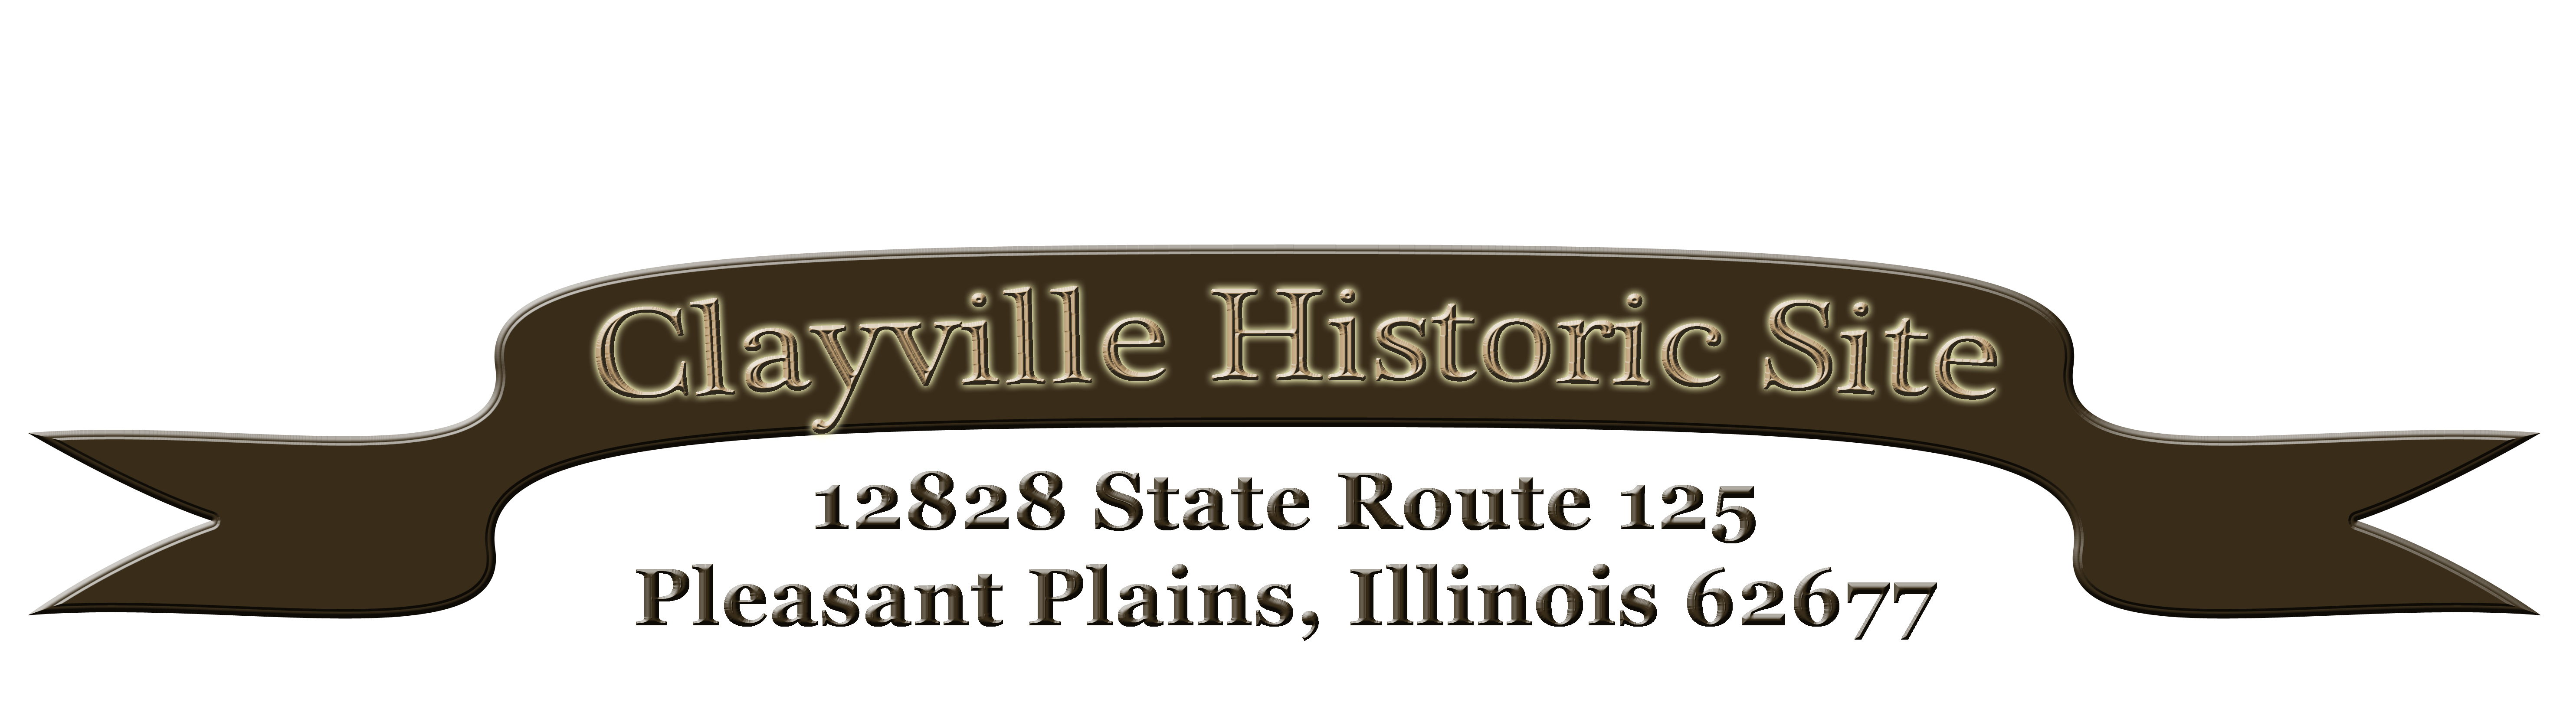 Clayville Historical Site